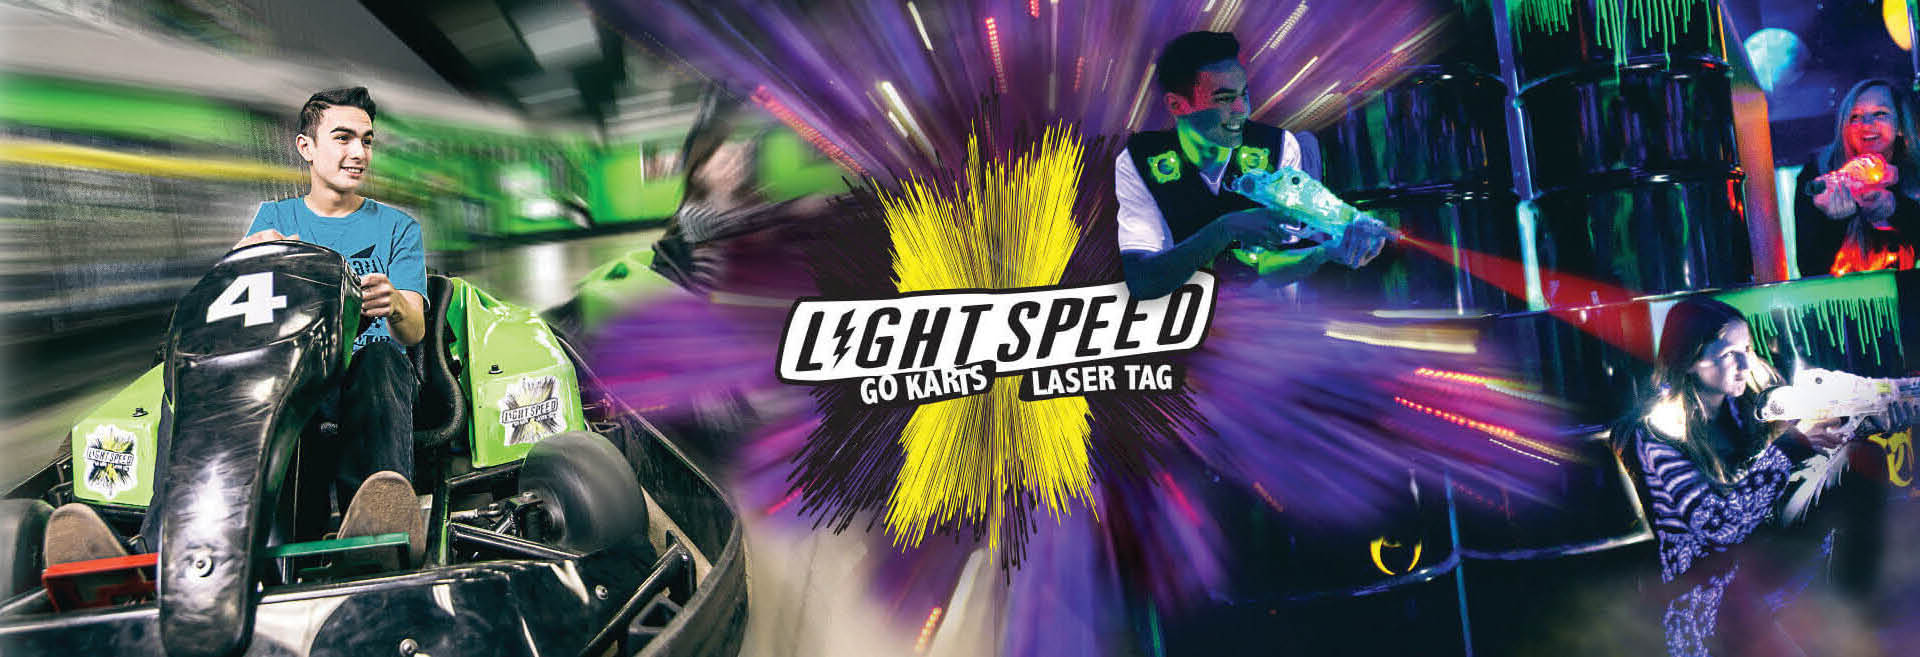 Picture of Light Speed Entertainment is the go-carting and laser tag near Greenfield, wI